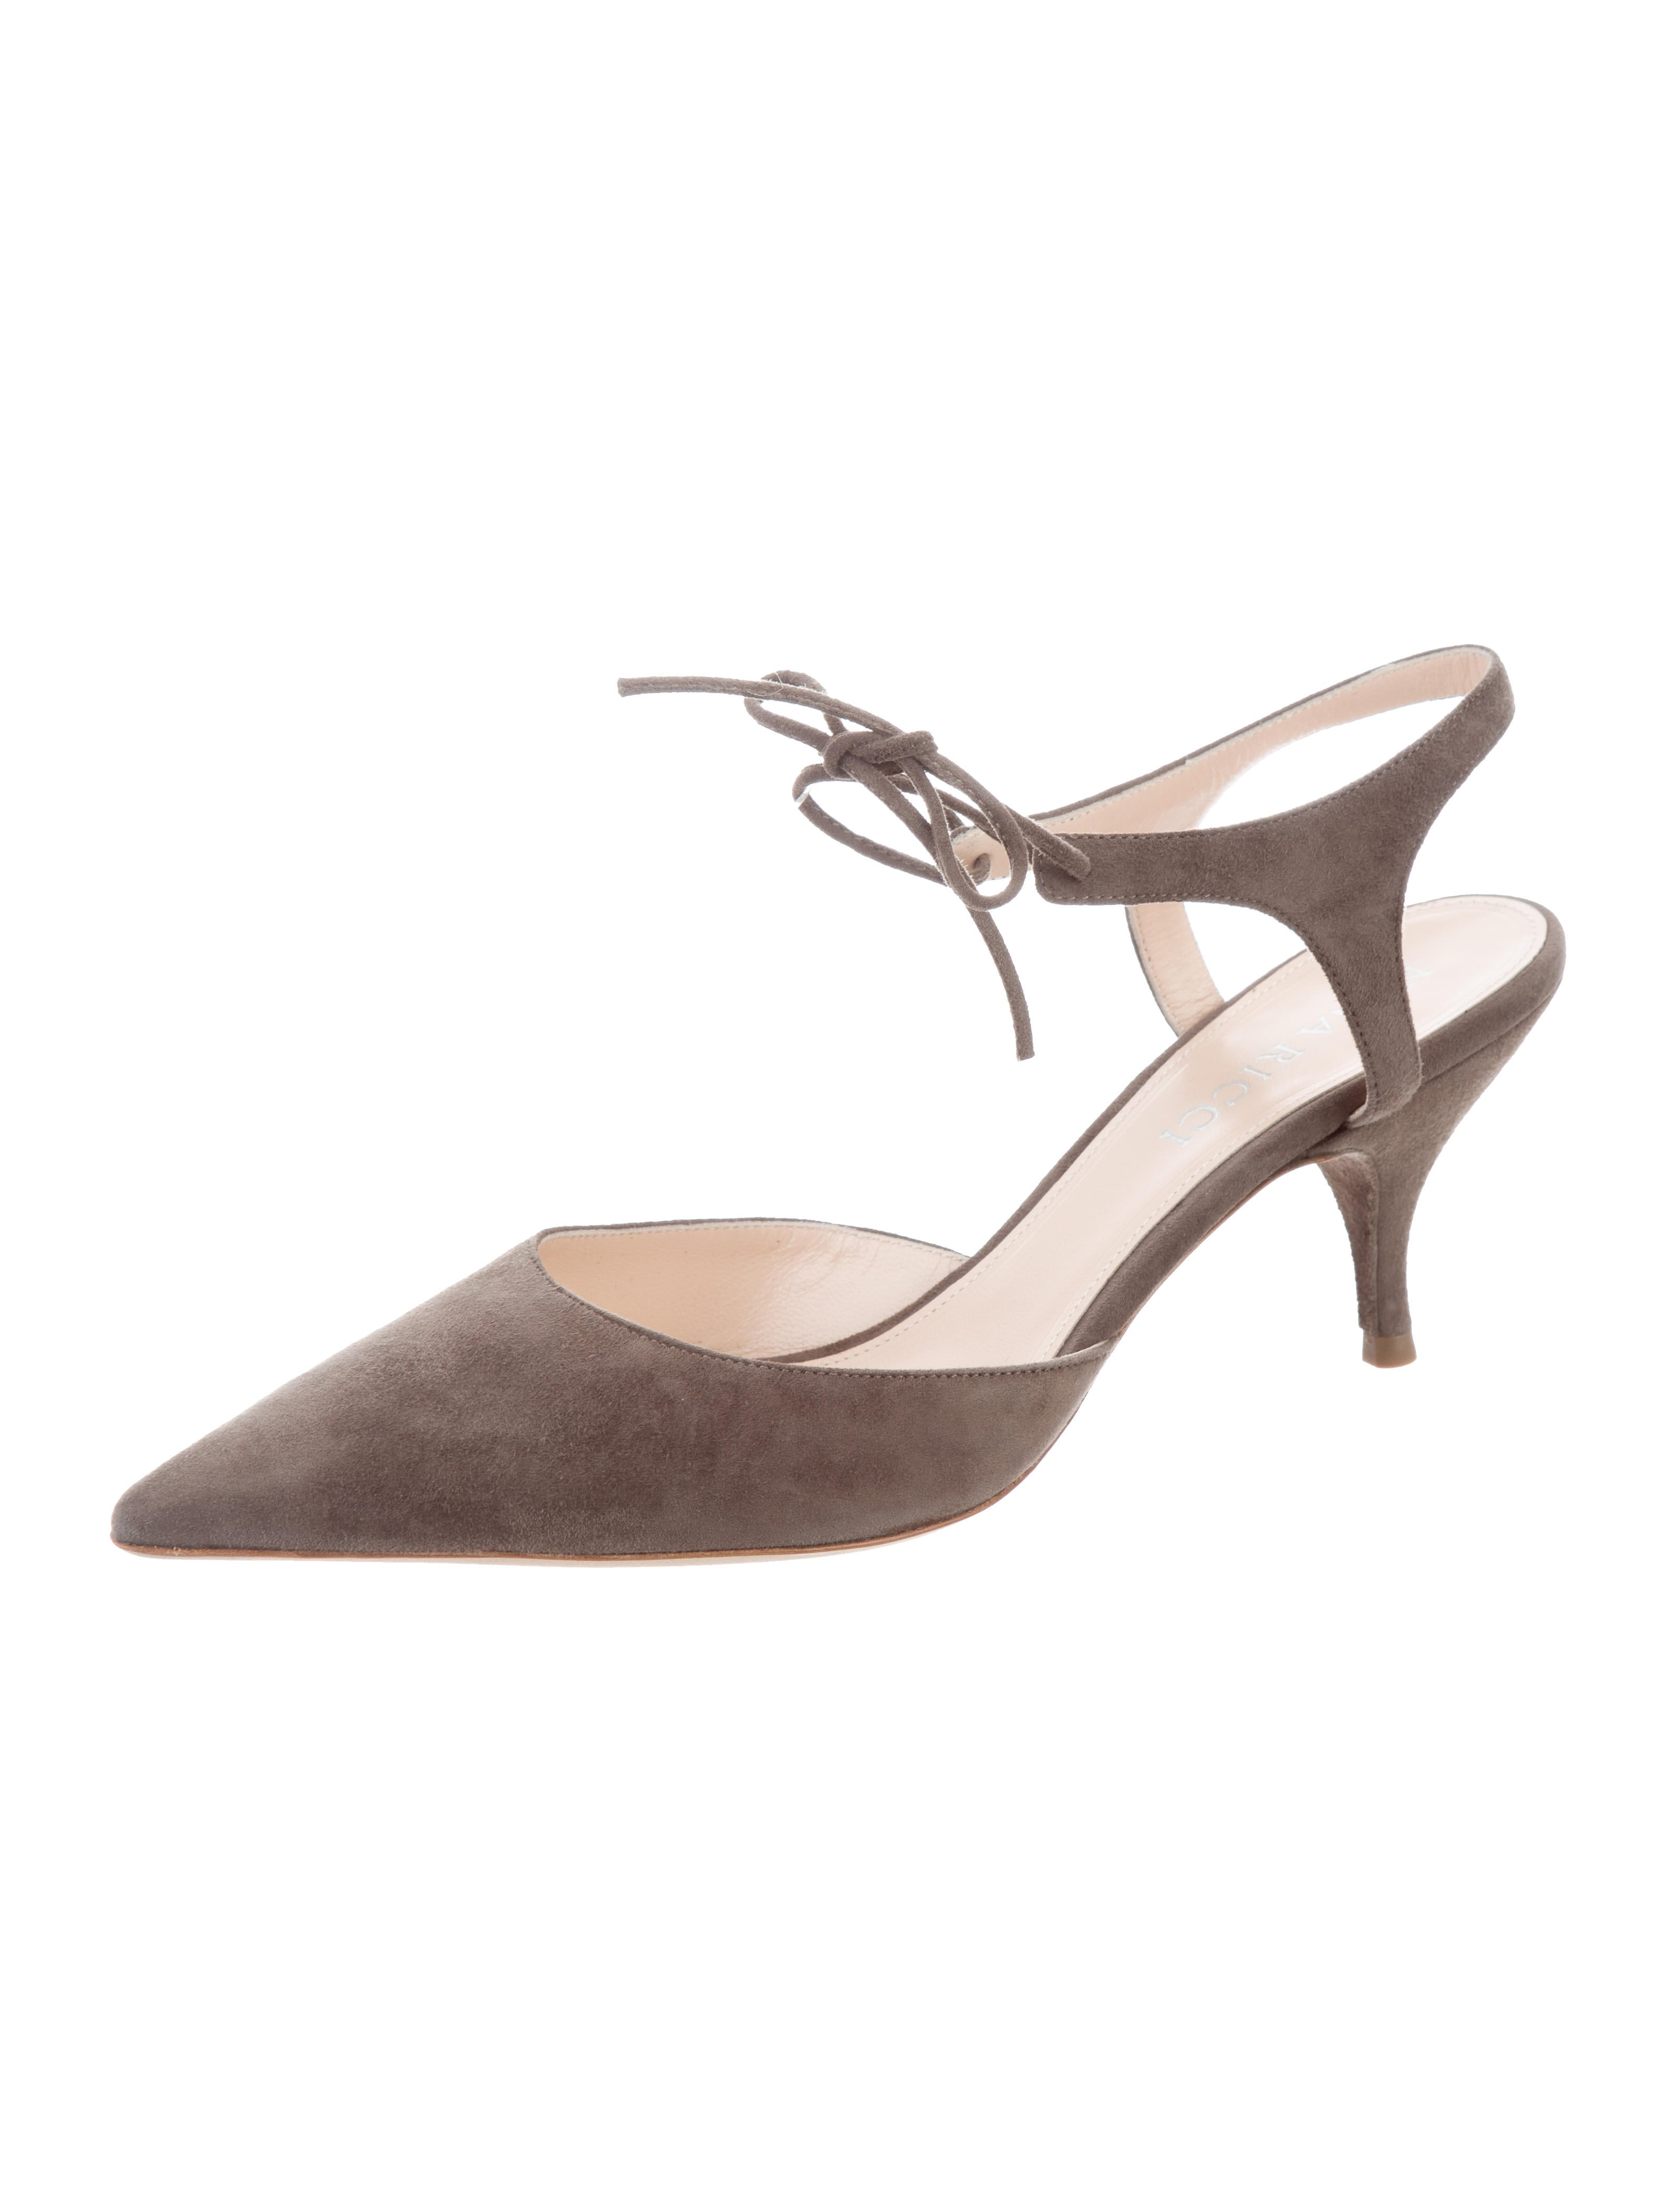 discounts cheap price Nina Ricci Suede Pointed-Toe Pumps w/ Tags sale find great 1lKnXT